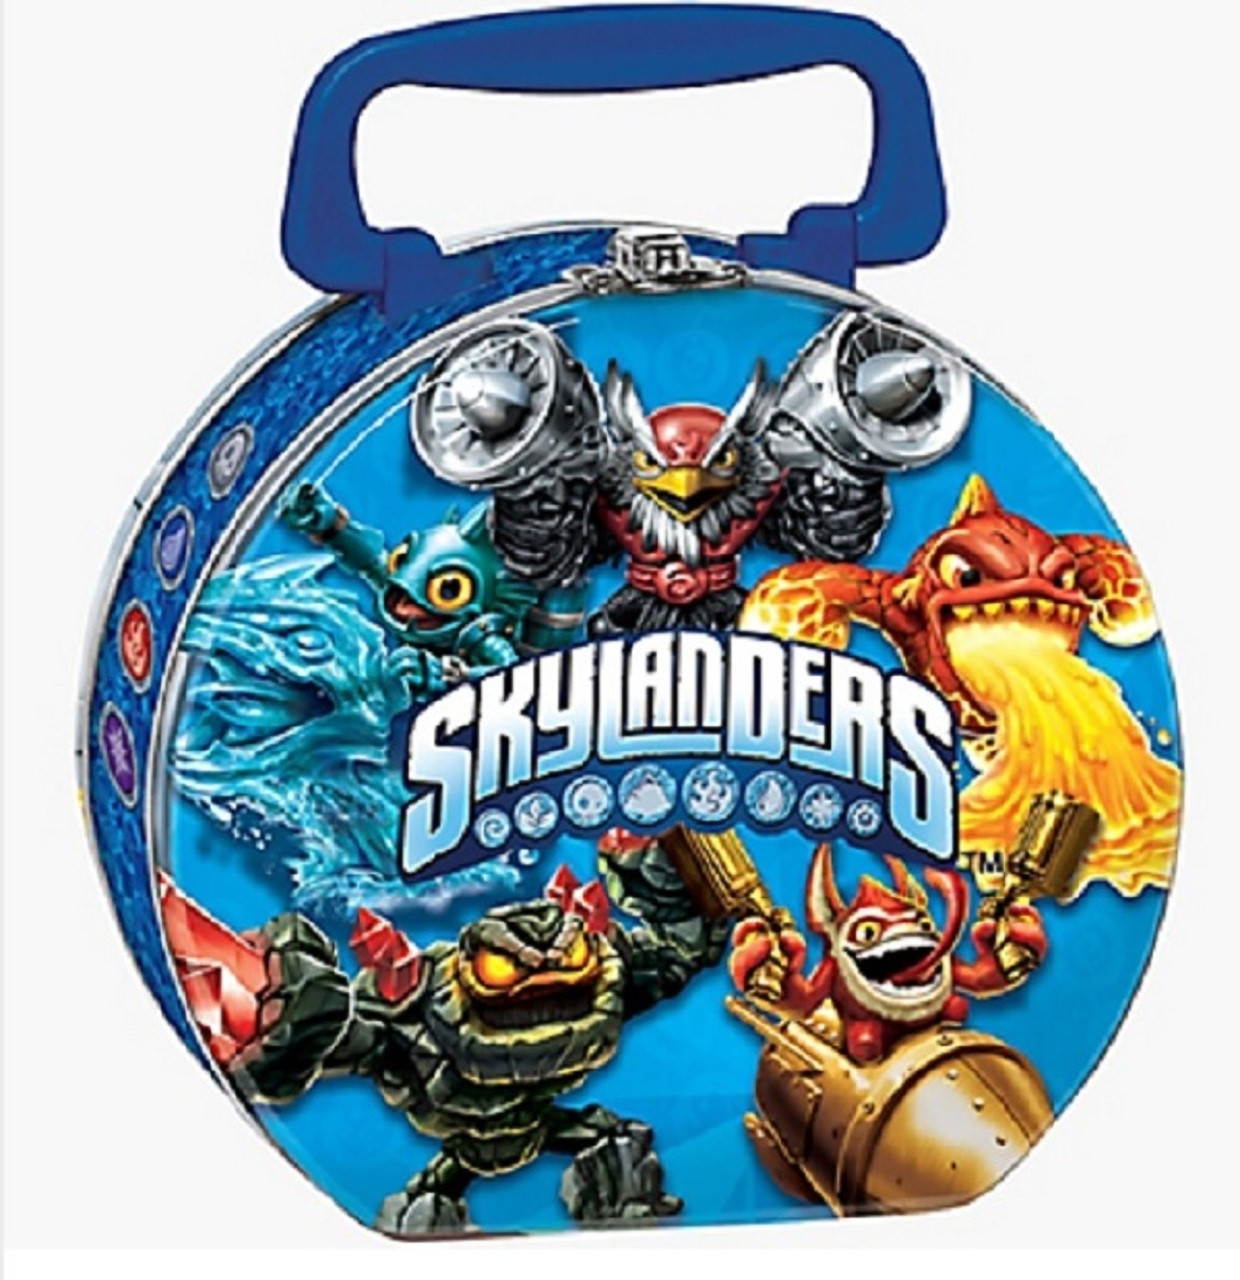 Skylanders - Collectible Tin Box - Round - Blue - Party Favors